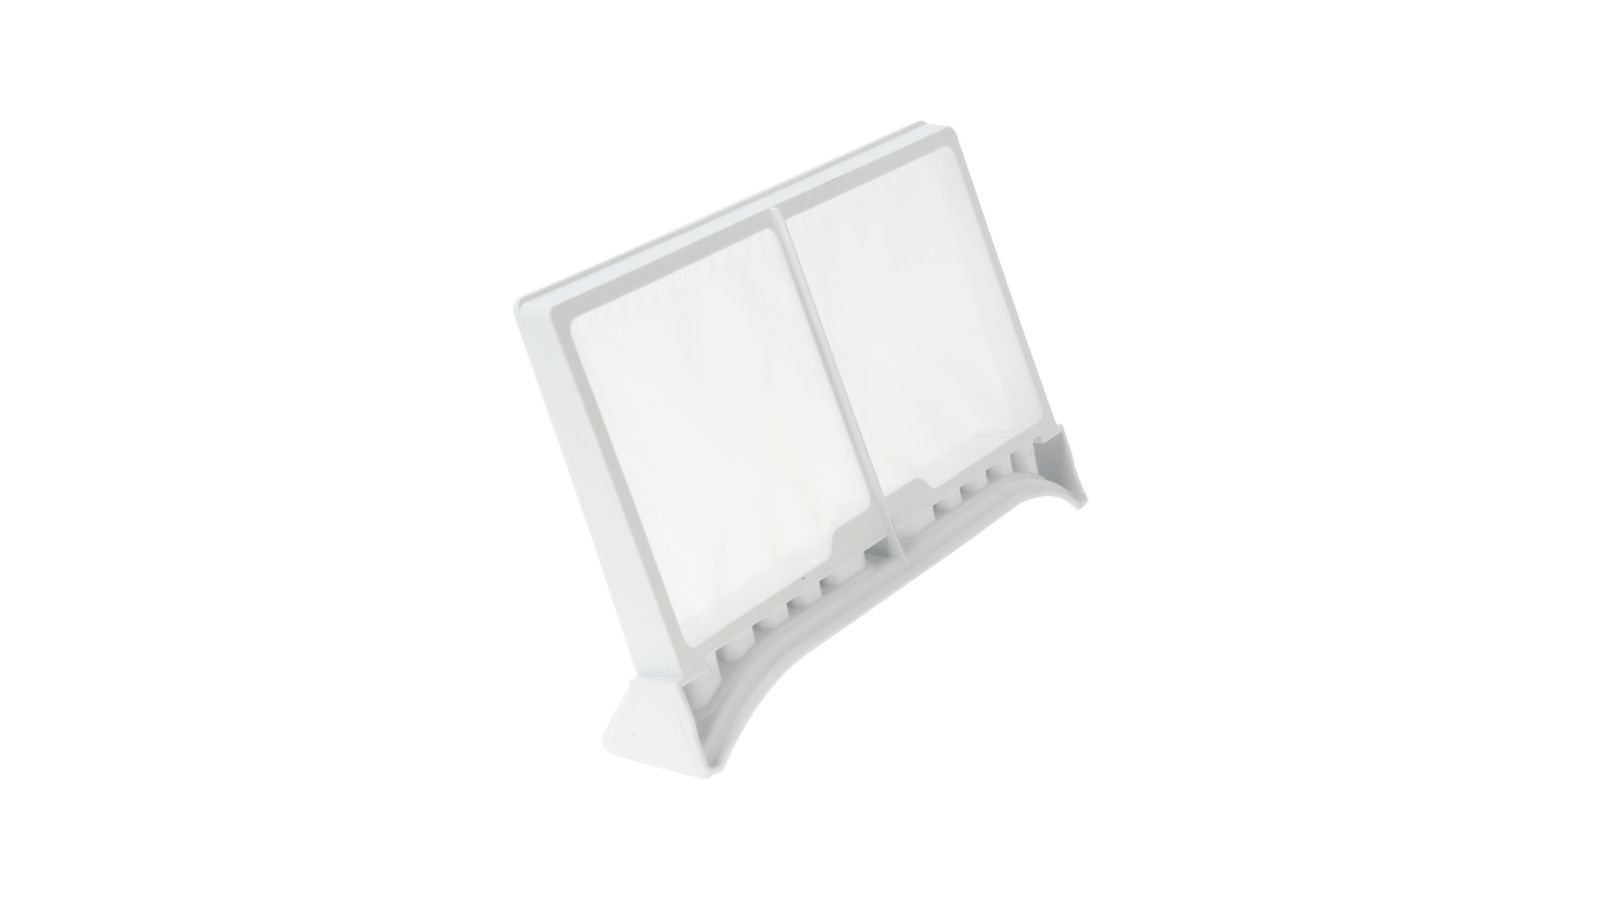 Pump Filter for Bosch Tumble Dryers BSH